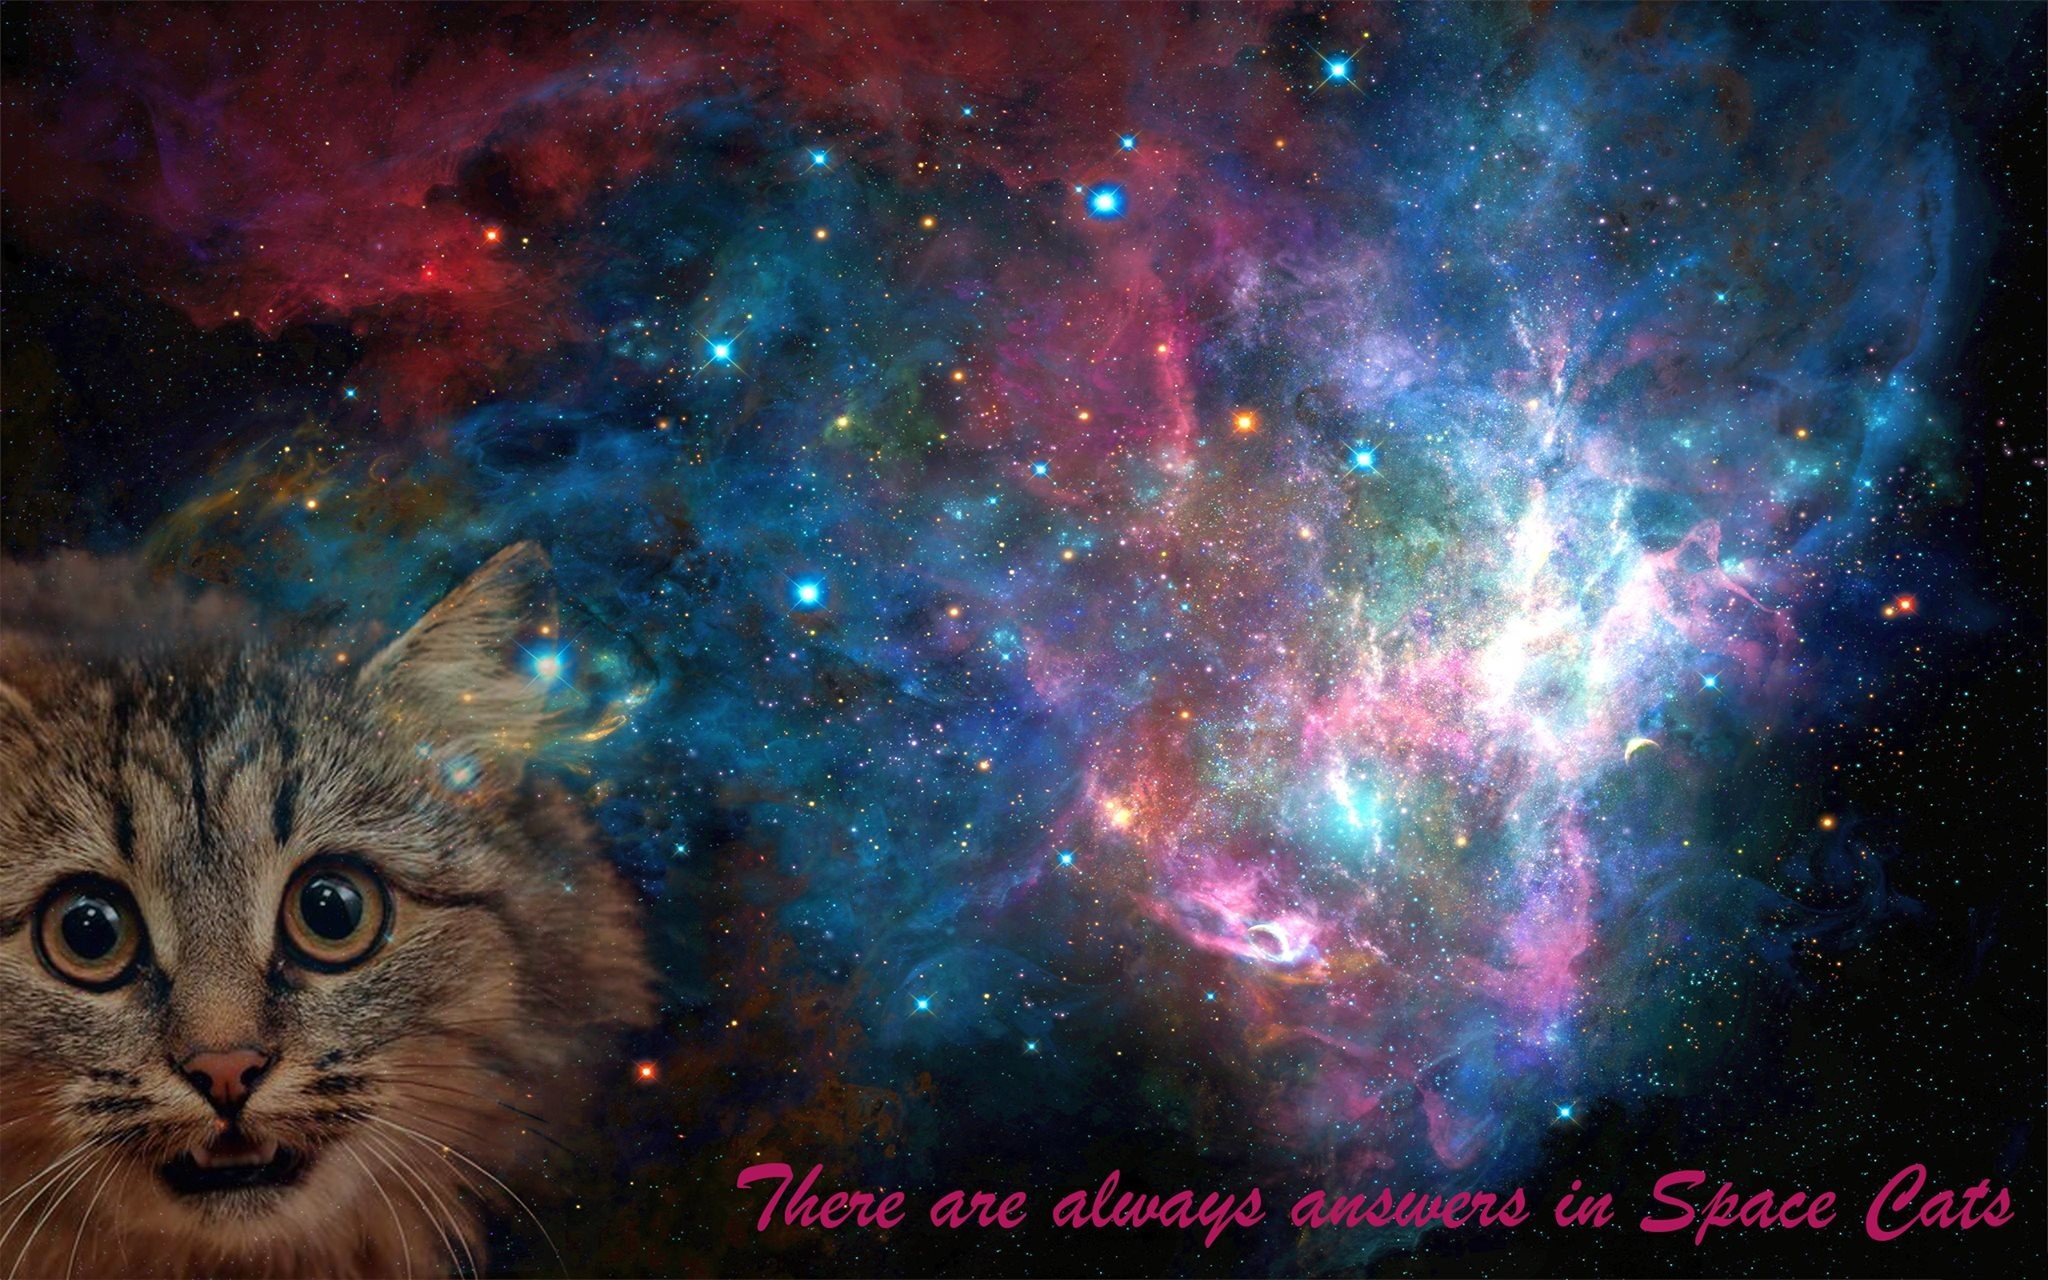 Download Samsung Galaxy Hd Wallpaper Gallery: Space, Cat, Space Cat, Galaxy HD Wallpapers / Desktop And